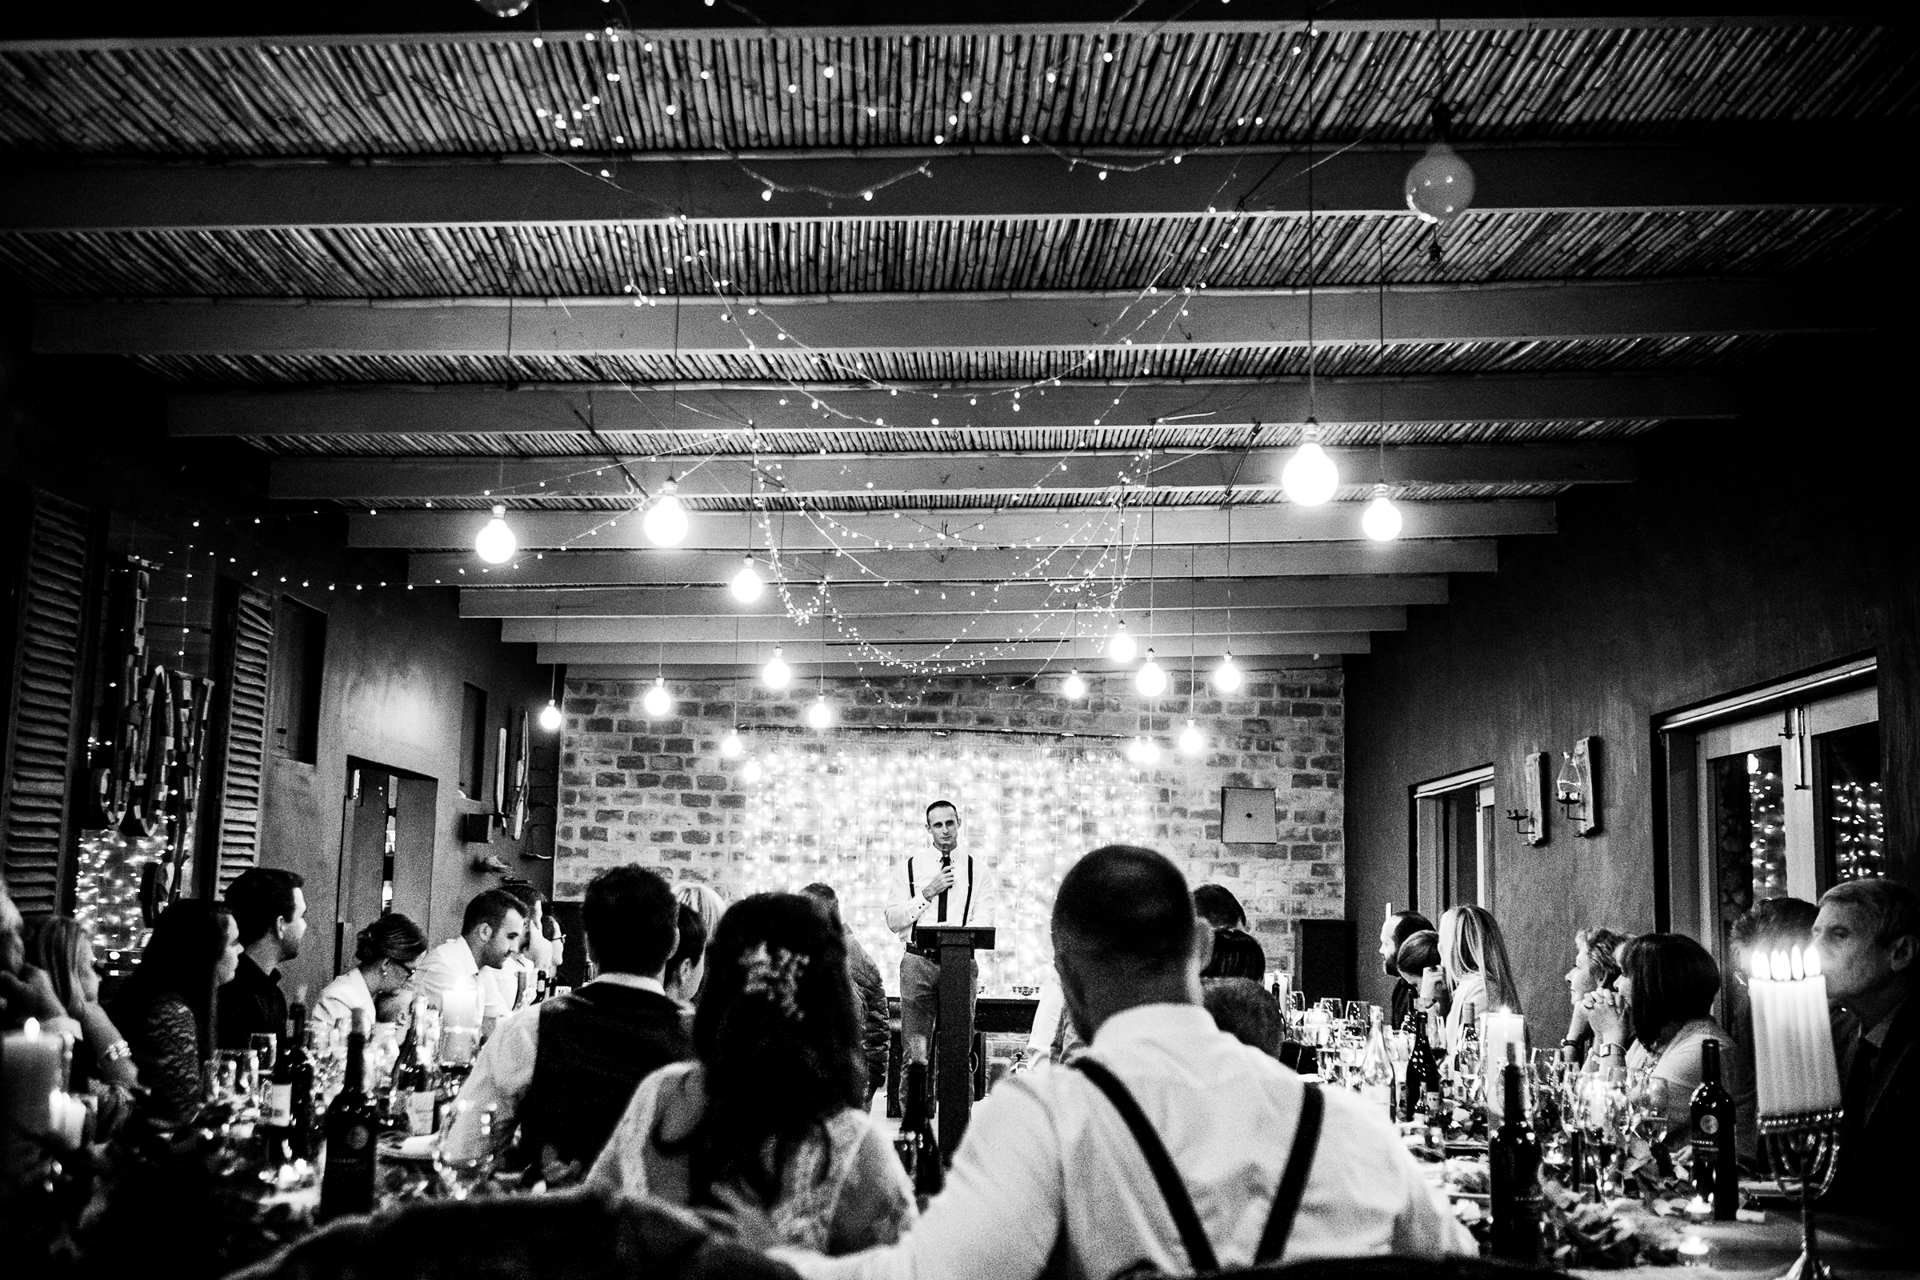 Gelukkie Wedding Venue - Elopement Reception Party Photo | The newlyweds and their guests listen to the groom's brother